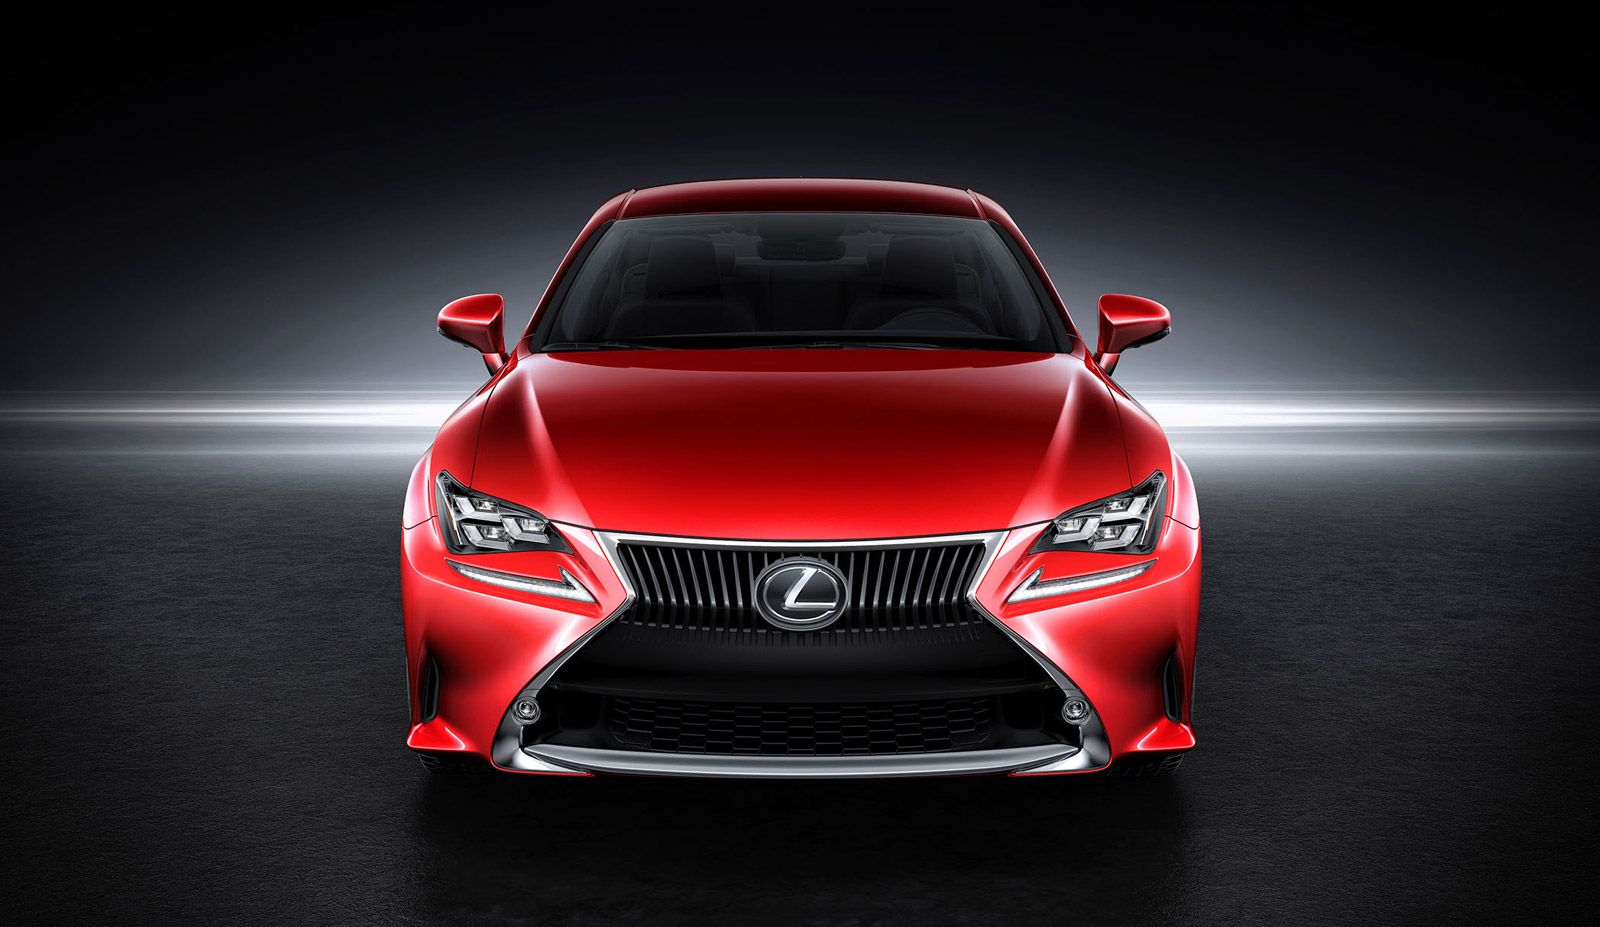 2015 Lexus RC 350 F Sport To Be Unveiled At 2014 Geneva